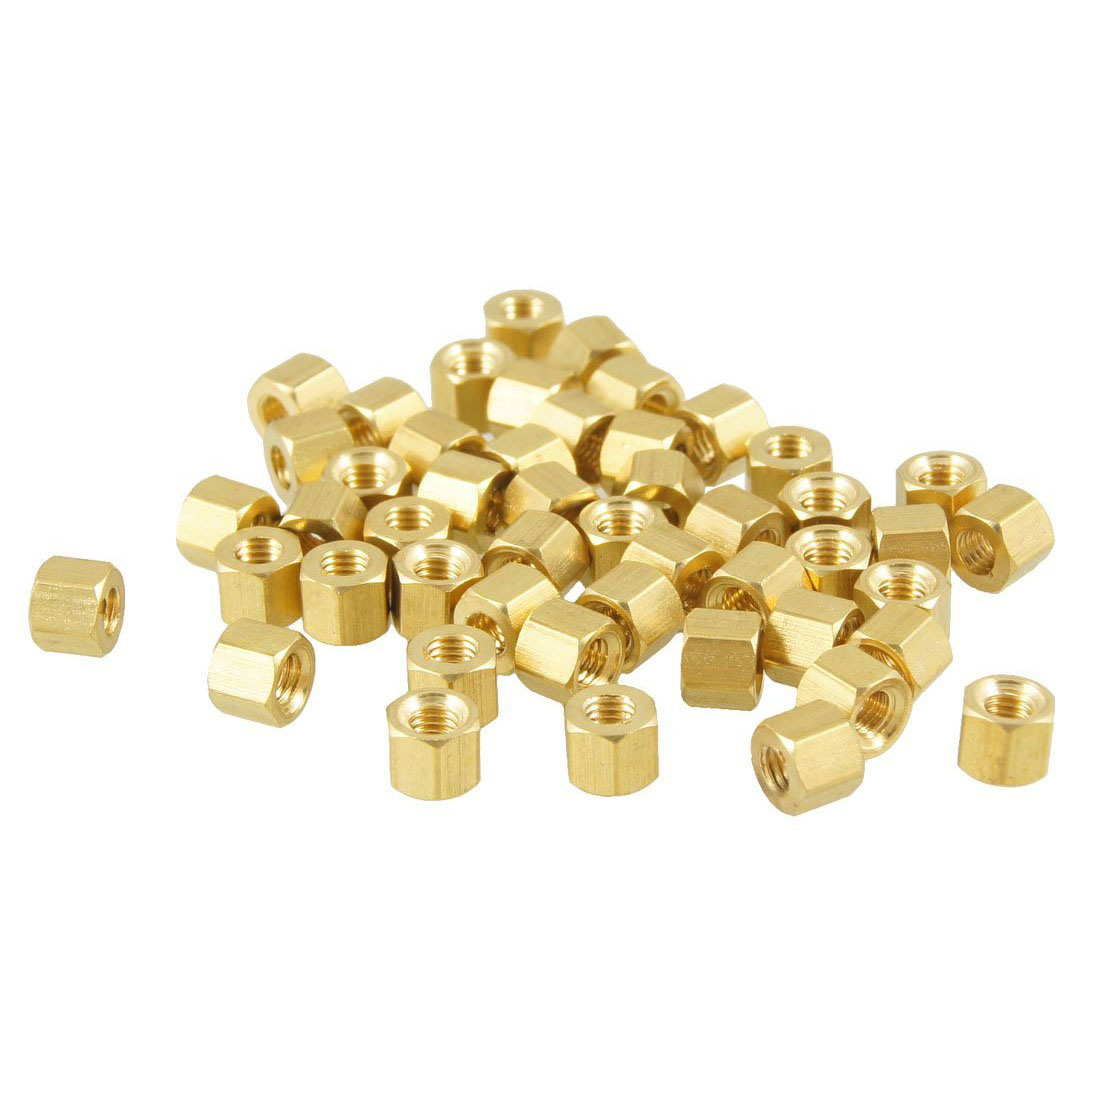 ELEG-50 Pcs <font><b>M3X4mm</b></font> Gold Tone Hexagonal Female Thread Standoff Spacers image